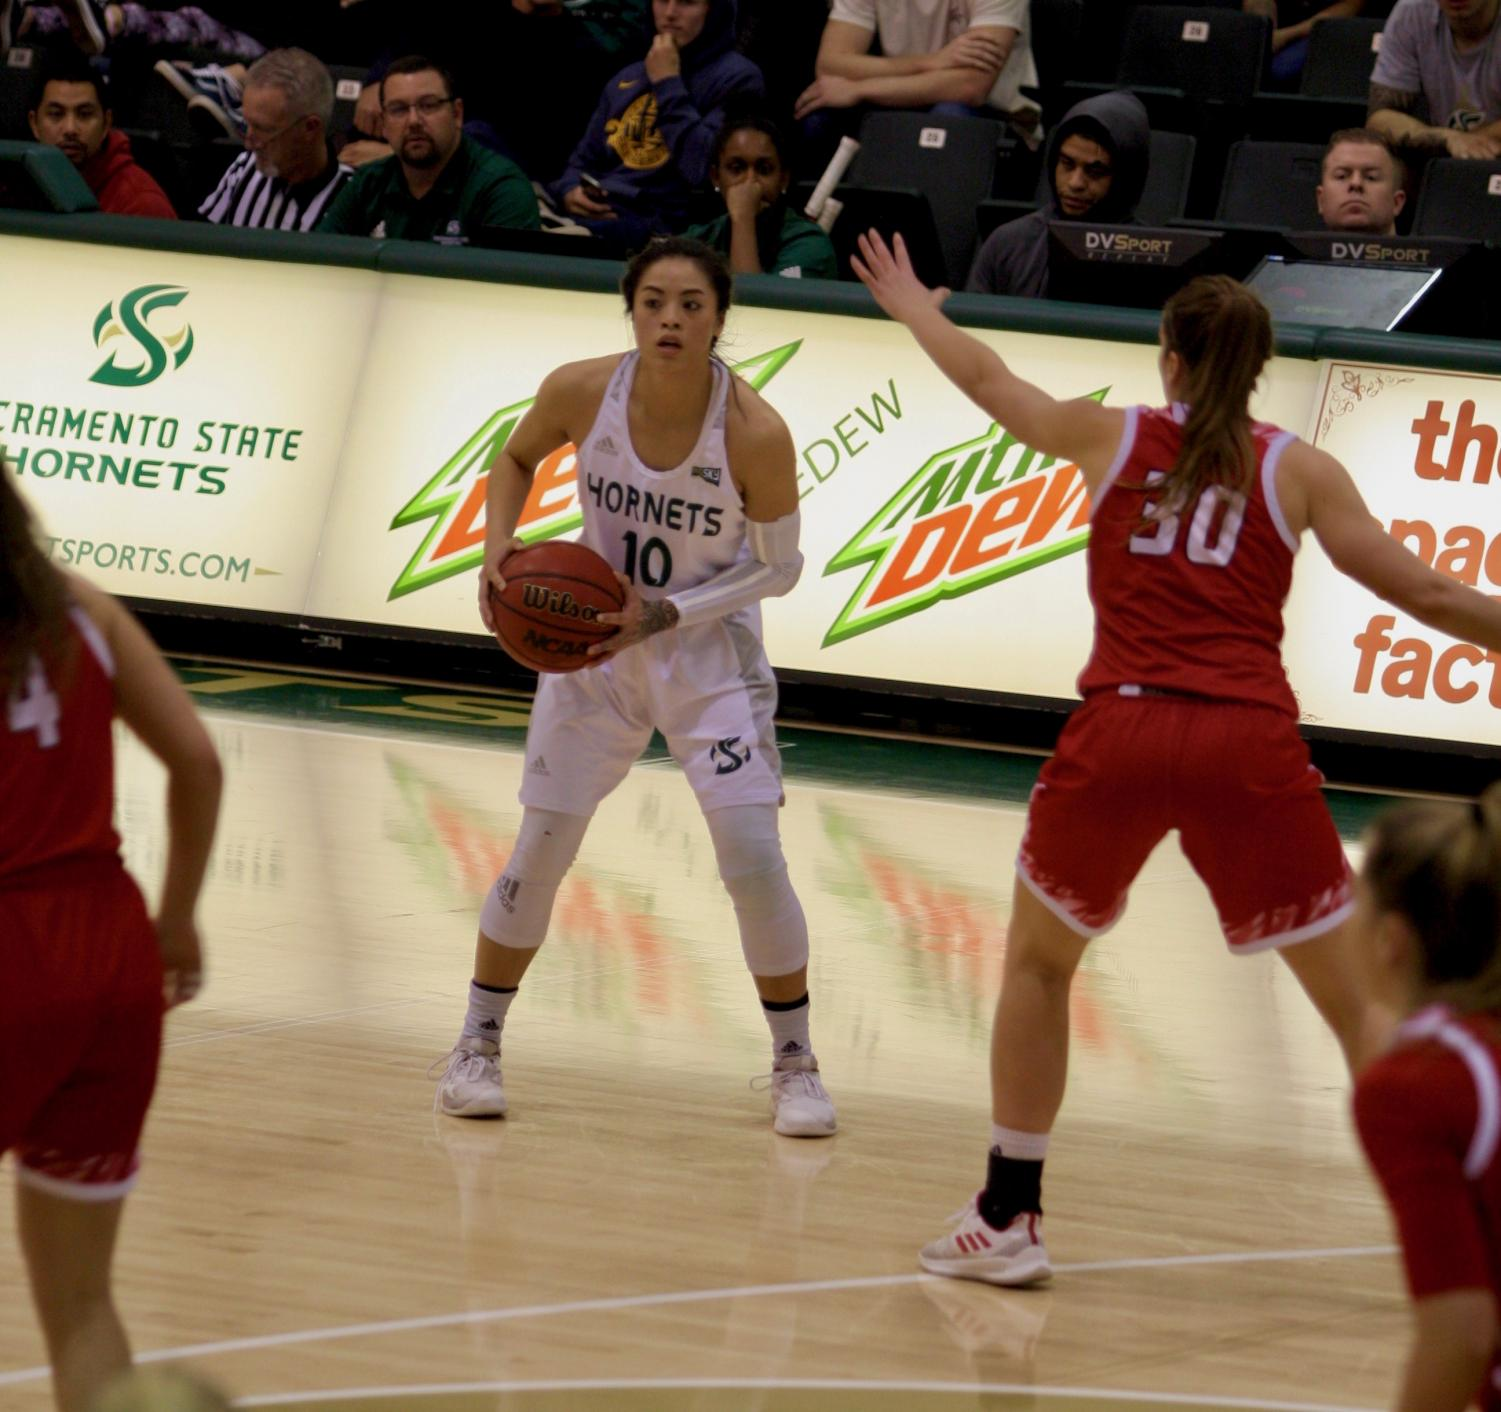 Sac State junior guard Gabi Bade prepares to pass in a 71-62 loss against Eastern Washington Feb. 28 at the Nest. Bade had a game-high 23 points on 6 of 10 from three.